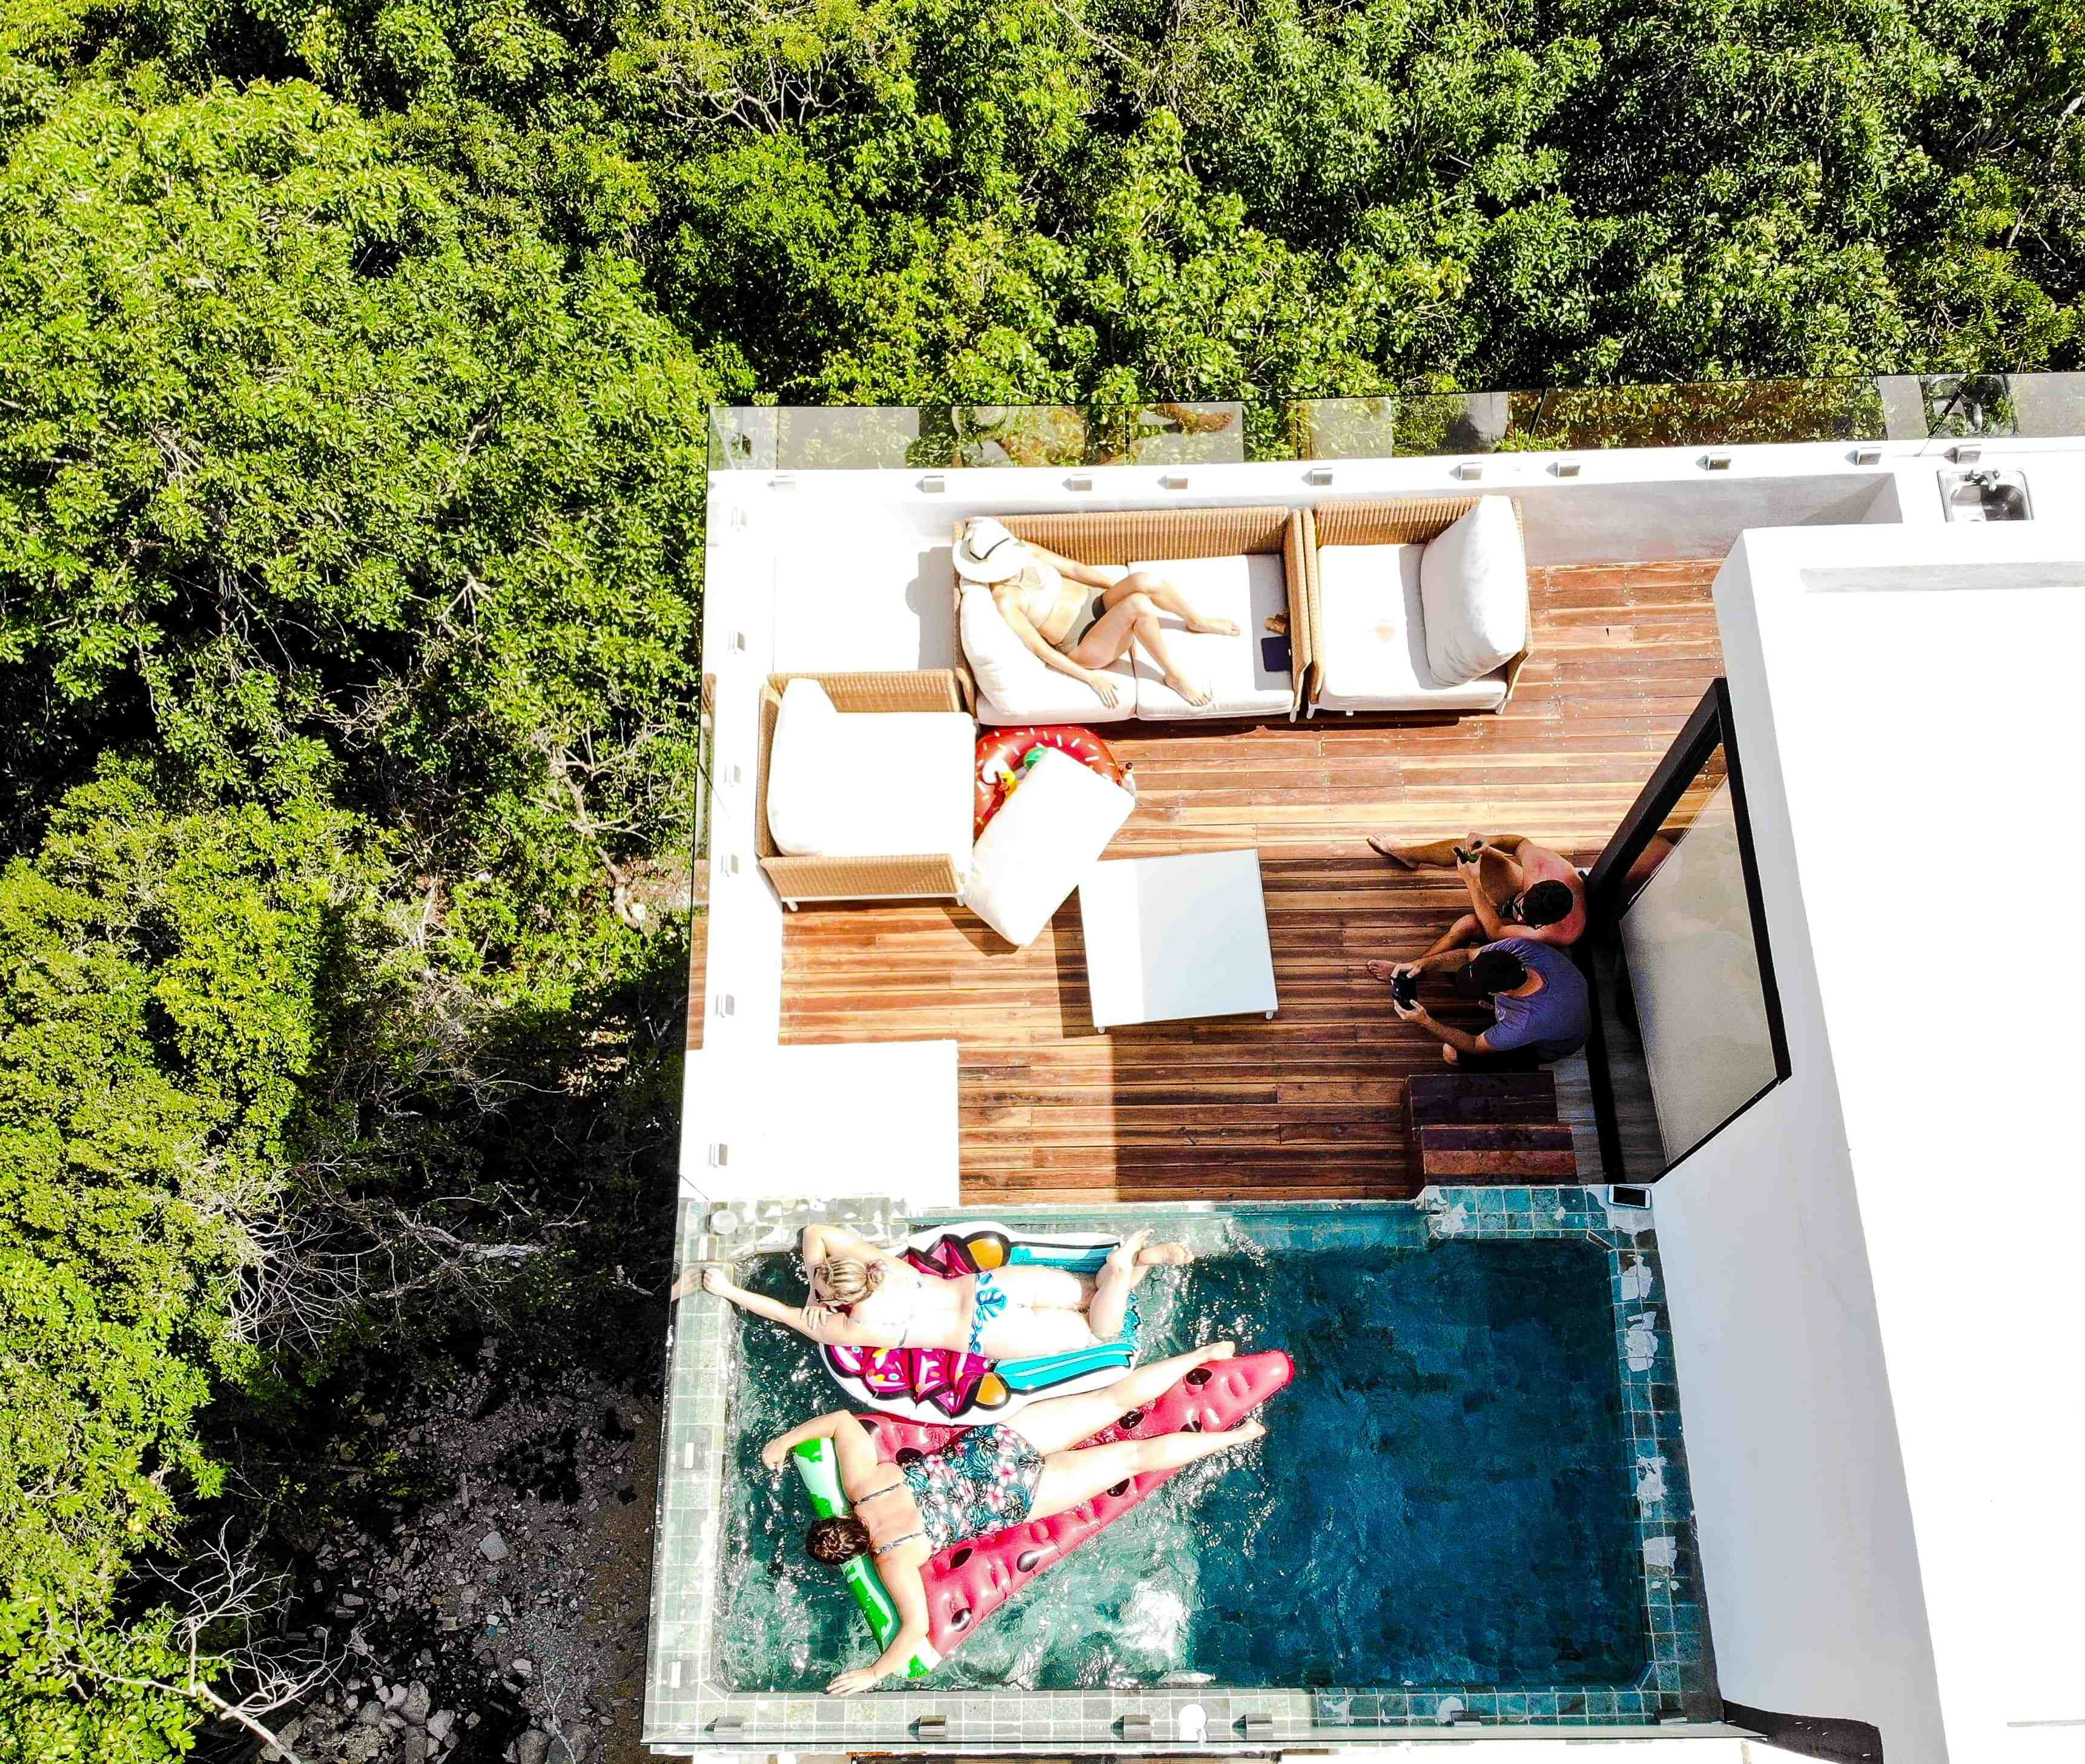 Airbnb Penthouse In Tulum Mexico Herlifeadventures Blog Luxurytravel Airbnb Penthouse Mexico Traveldestinatio Rooftop Pool Rooftop Design Jungle House